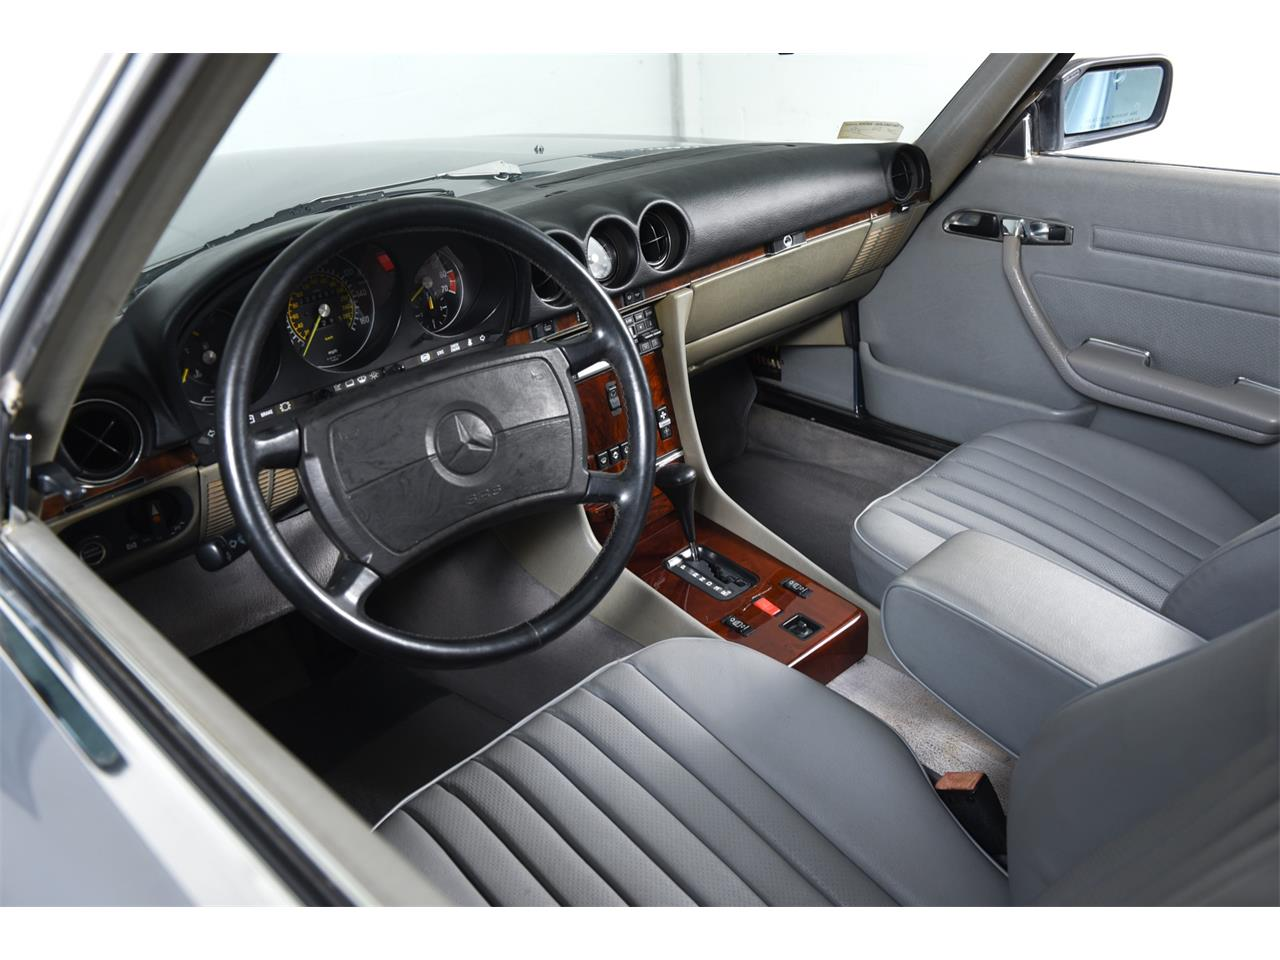 1988 Mercedes-Benz 560 for sale in Farmingdale, NY – photo 20